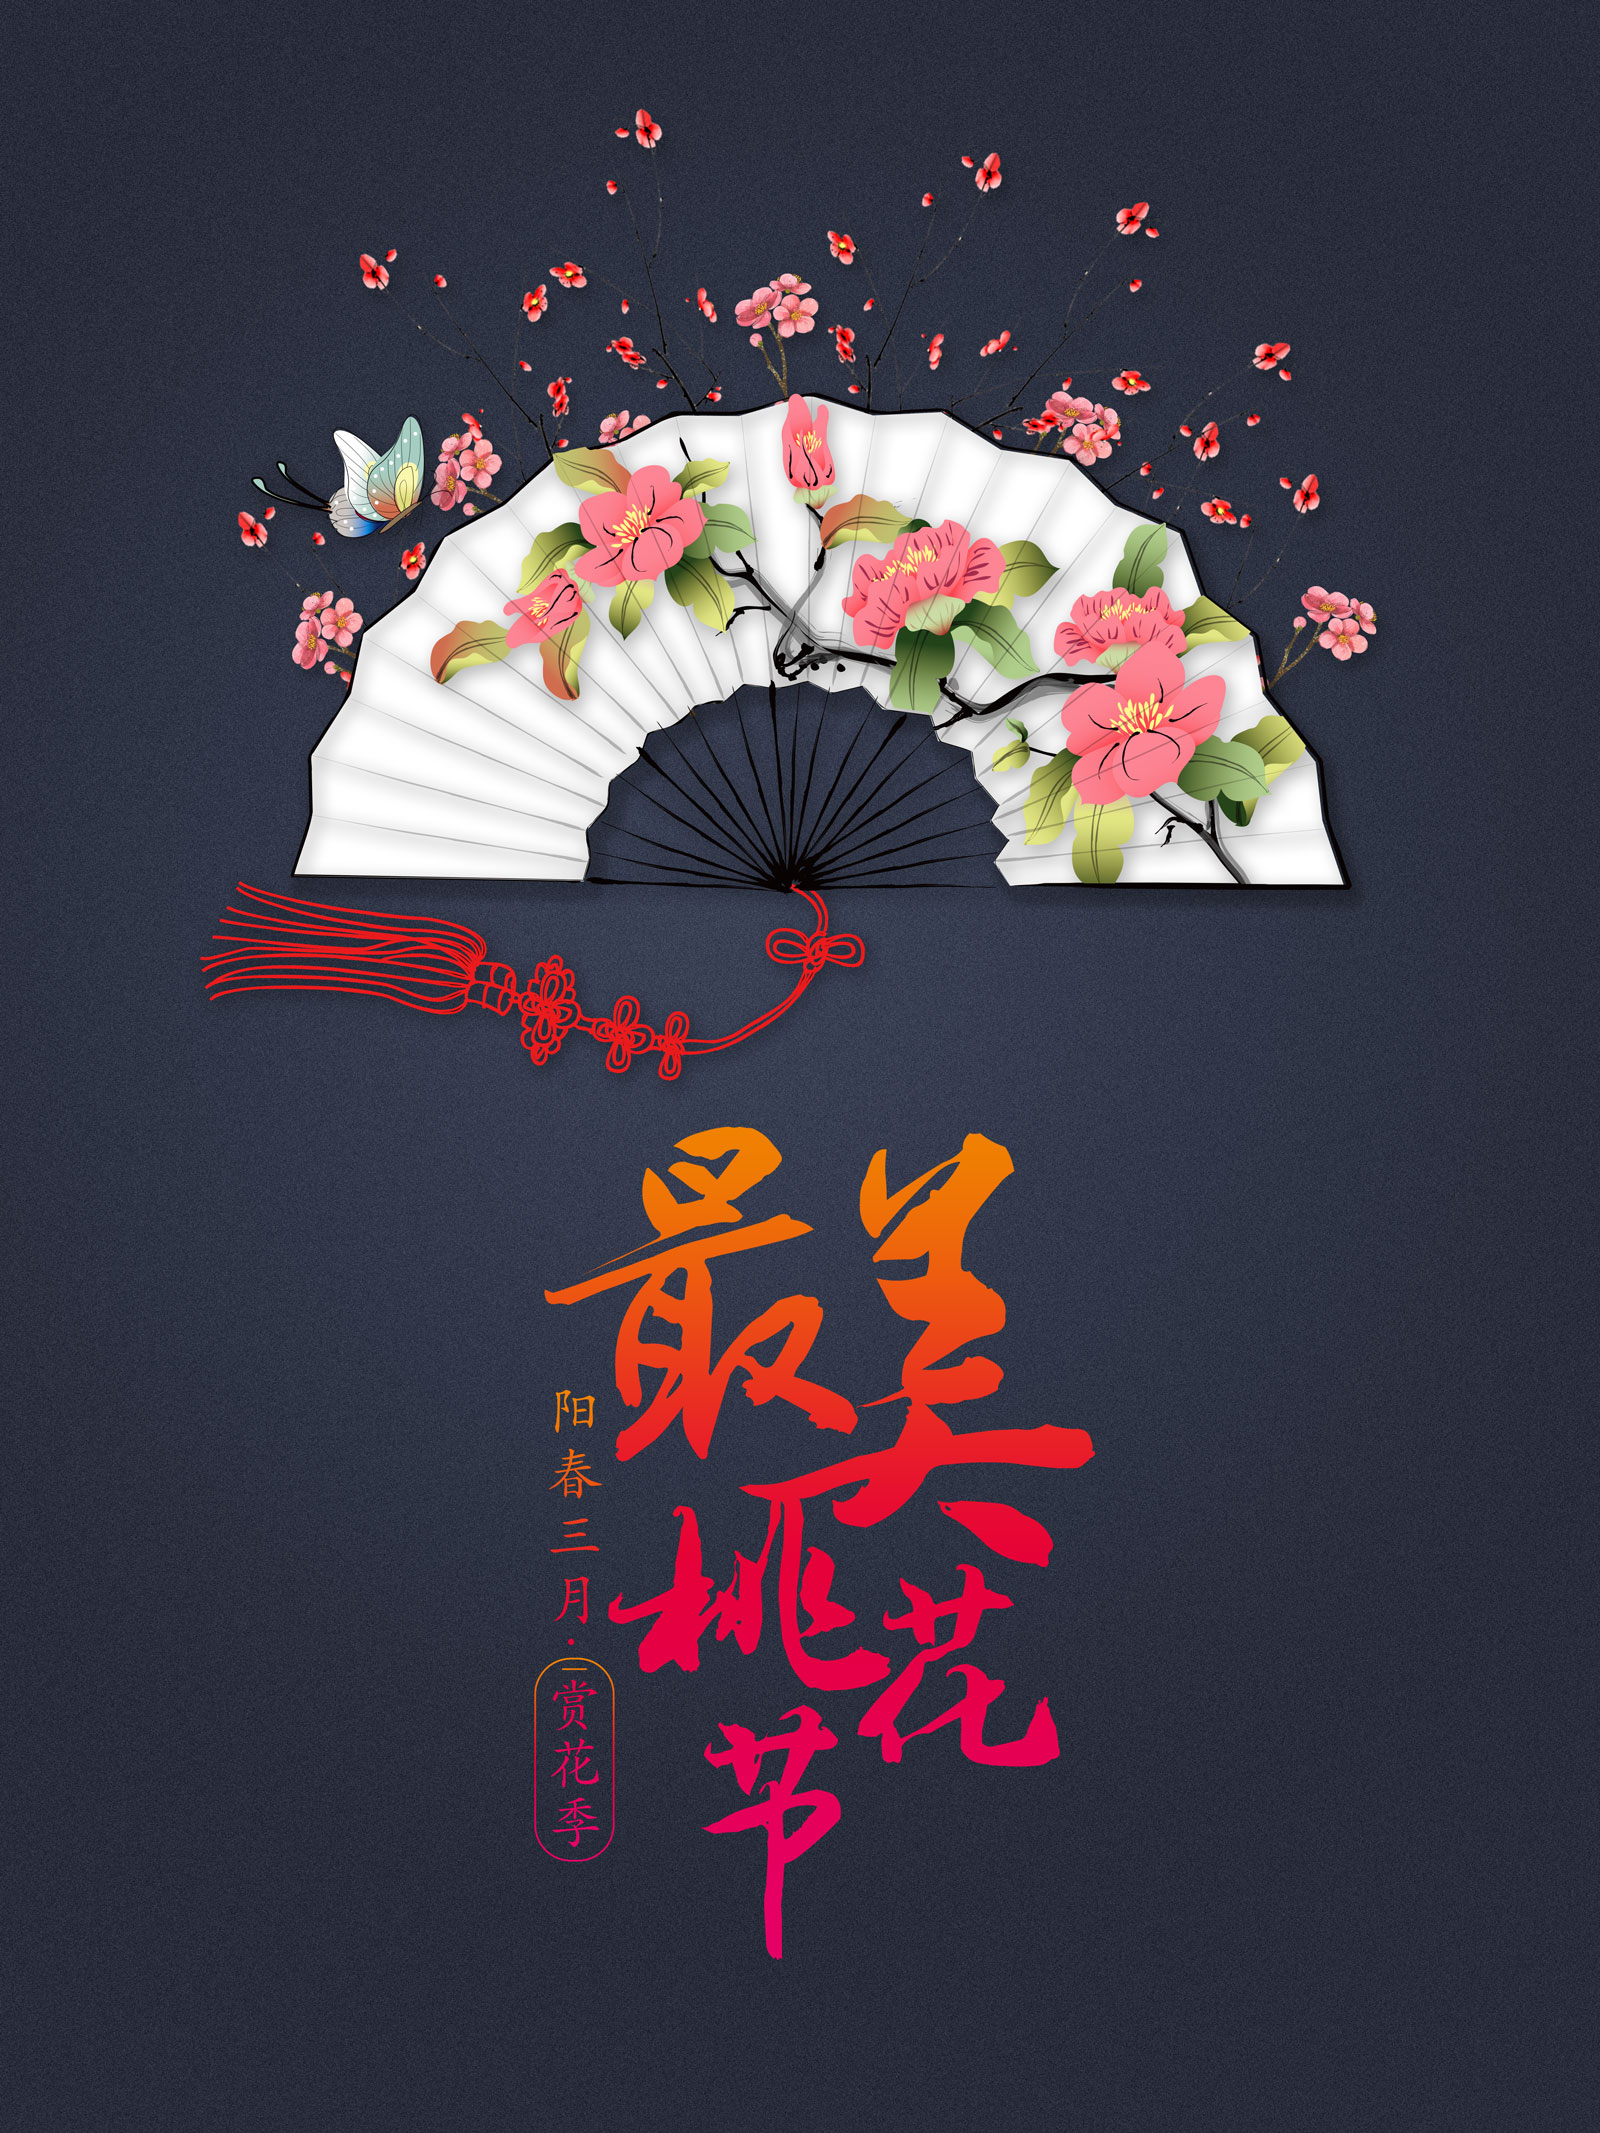 chinesefontdesign.com 2017 04 03 10 24 35 Peach Blossom Festival   China PSD File Free Download